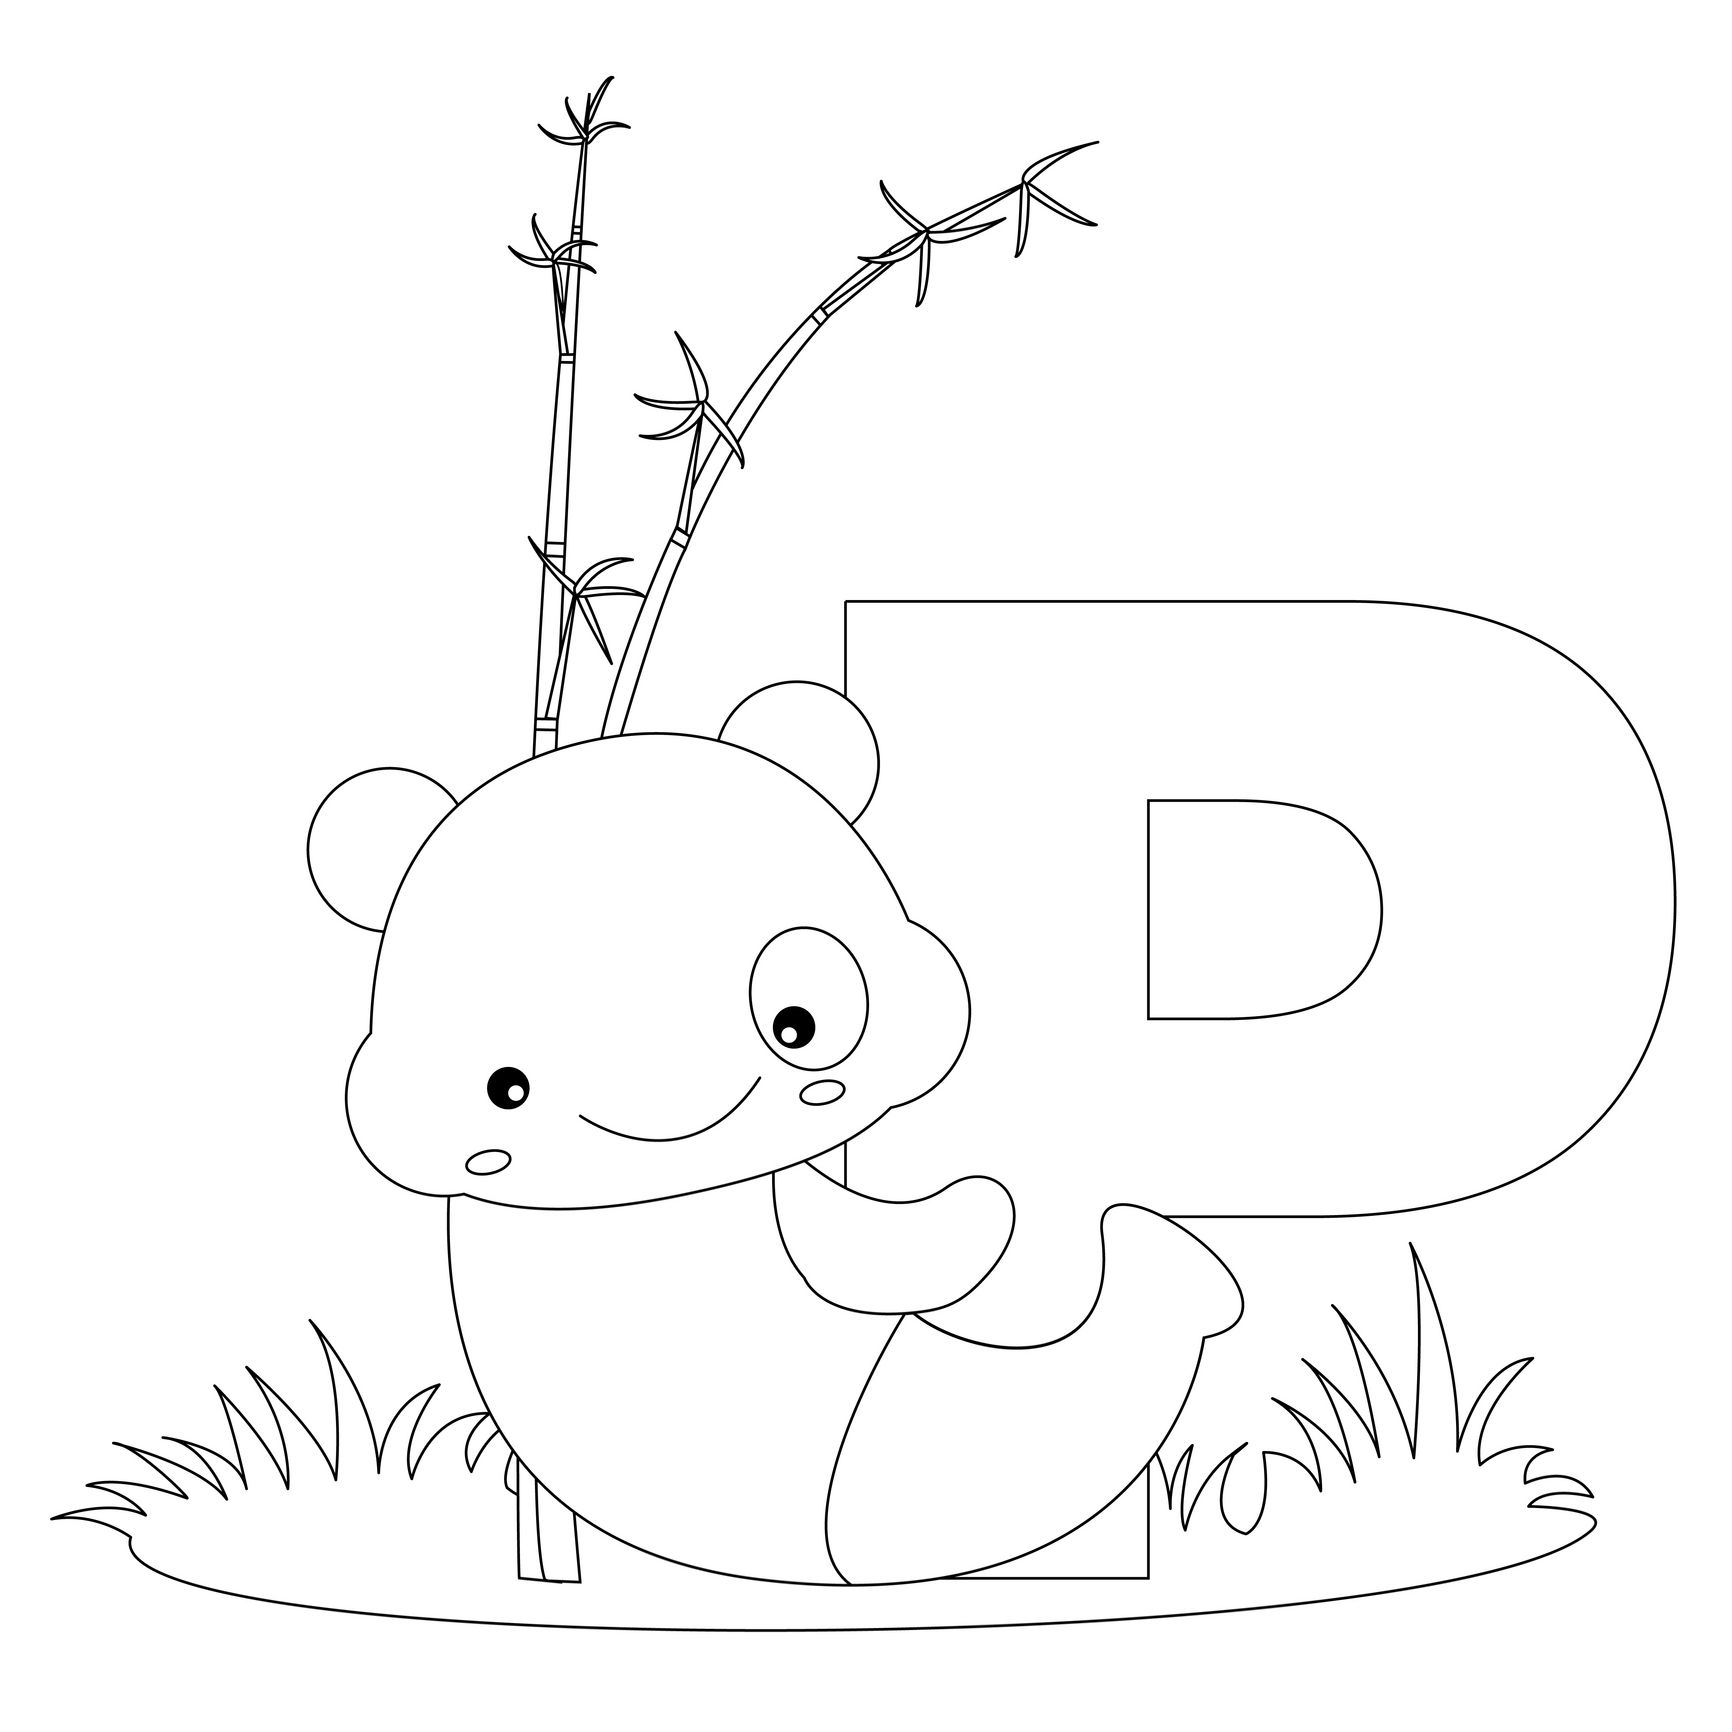 animal abc coloring pages | Animal Alphabet Letter P is for Panda! Here's a simple ...